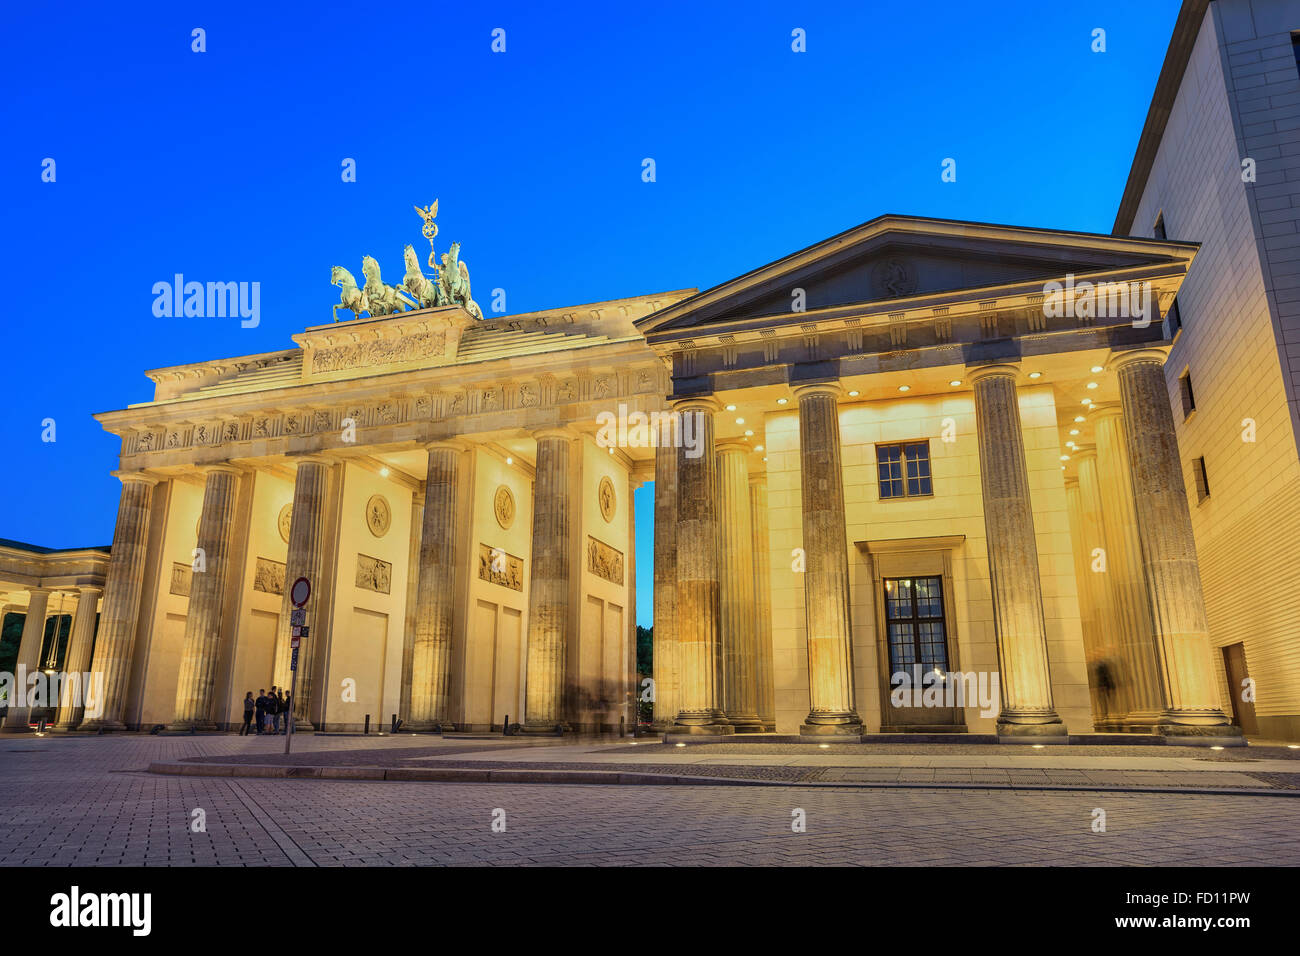 Porte de Brandebourg , Berlin , Allemagne Photo Stock